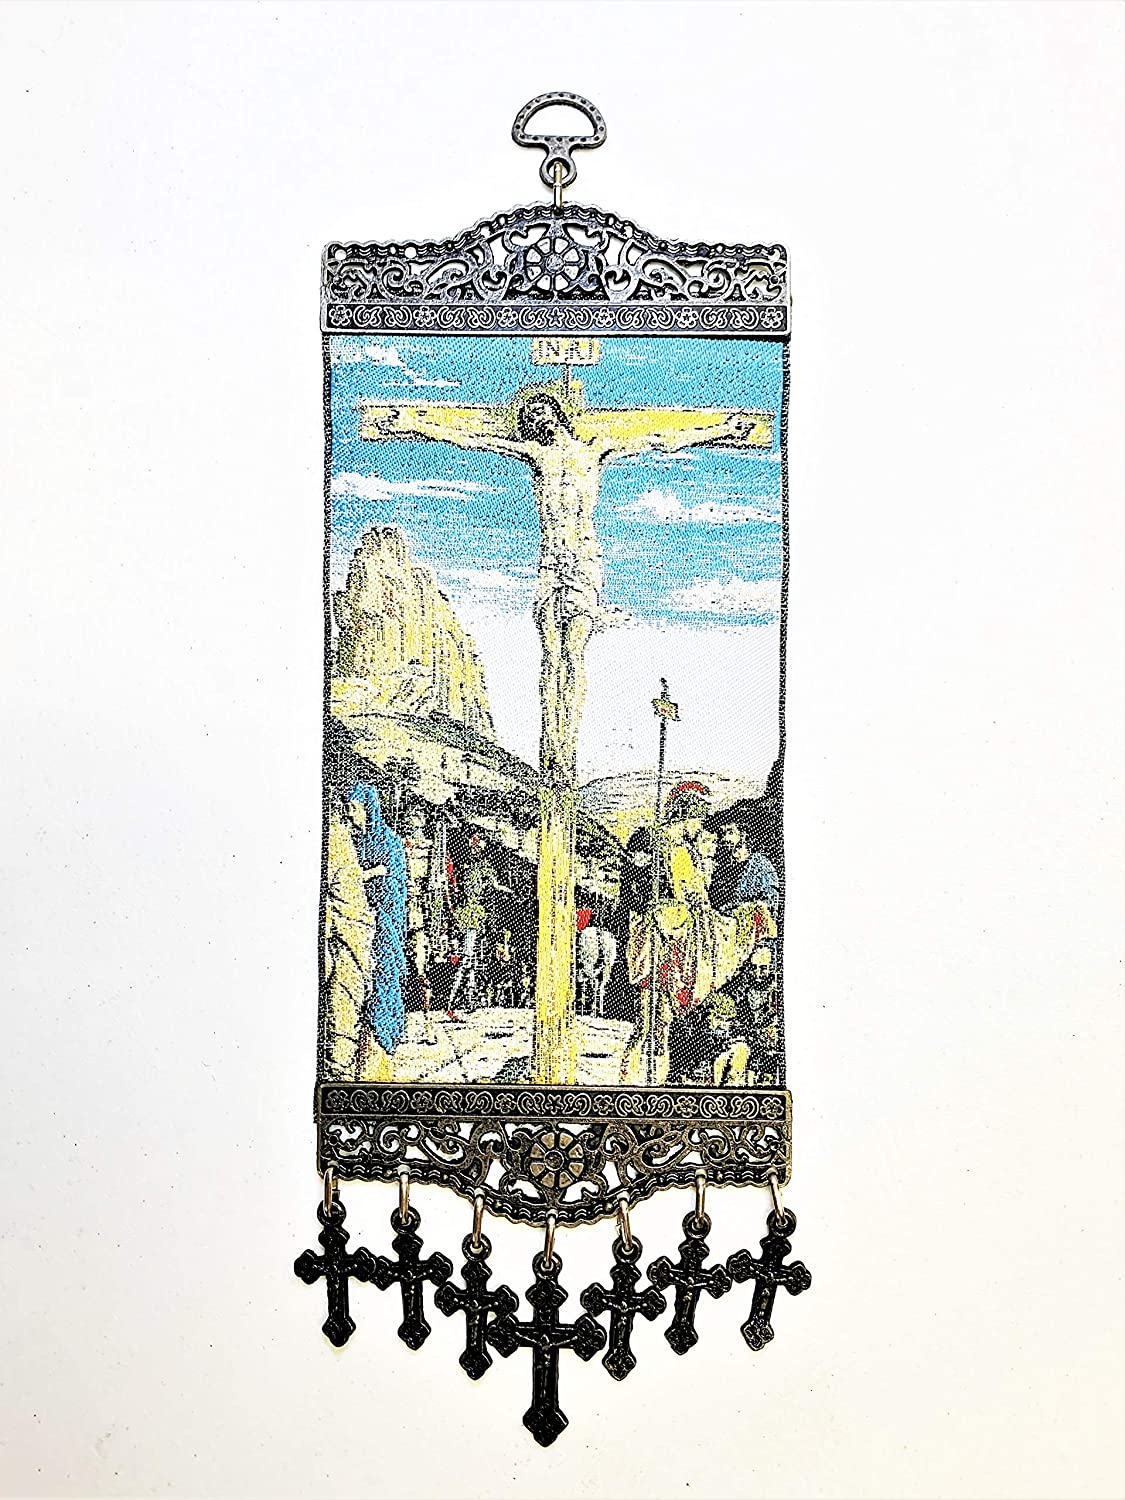 Religious Icon – Crucifixion of Lord Jesus Christ - Wall Hanging Tapestry Banner Art Decor - Christian Orthodox Catholic - 11 x 4 inch - Christmas Easter Thanksgiving Anniversary Birthday Housewarming Ideal